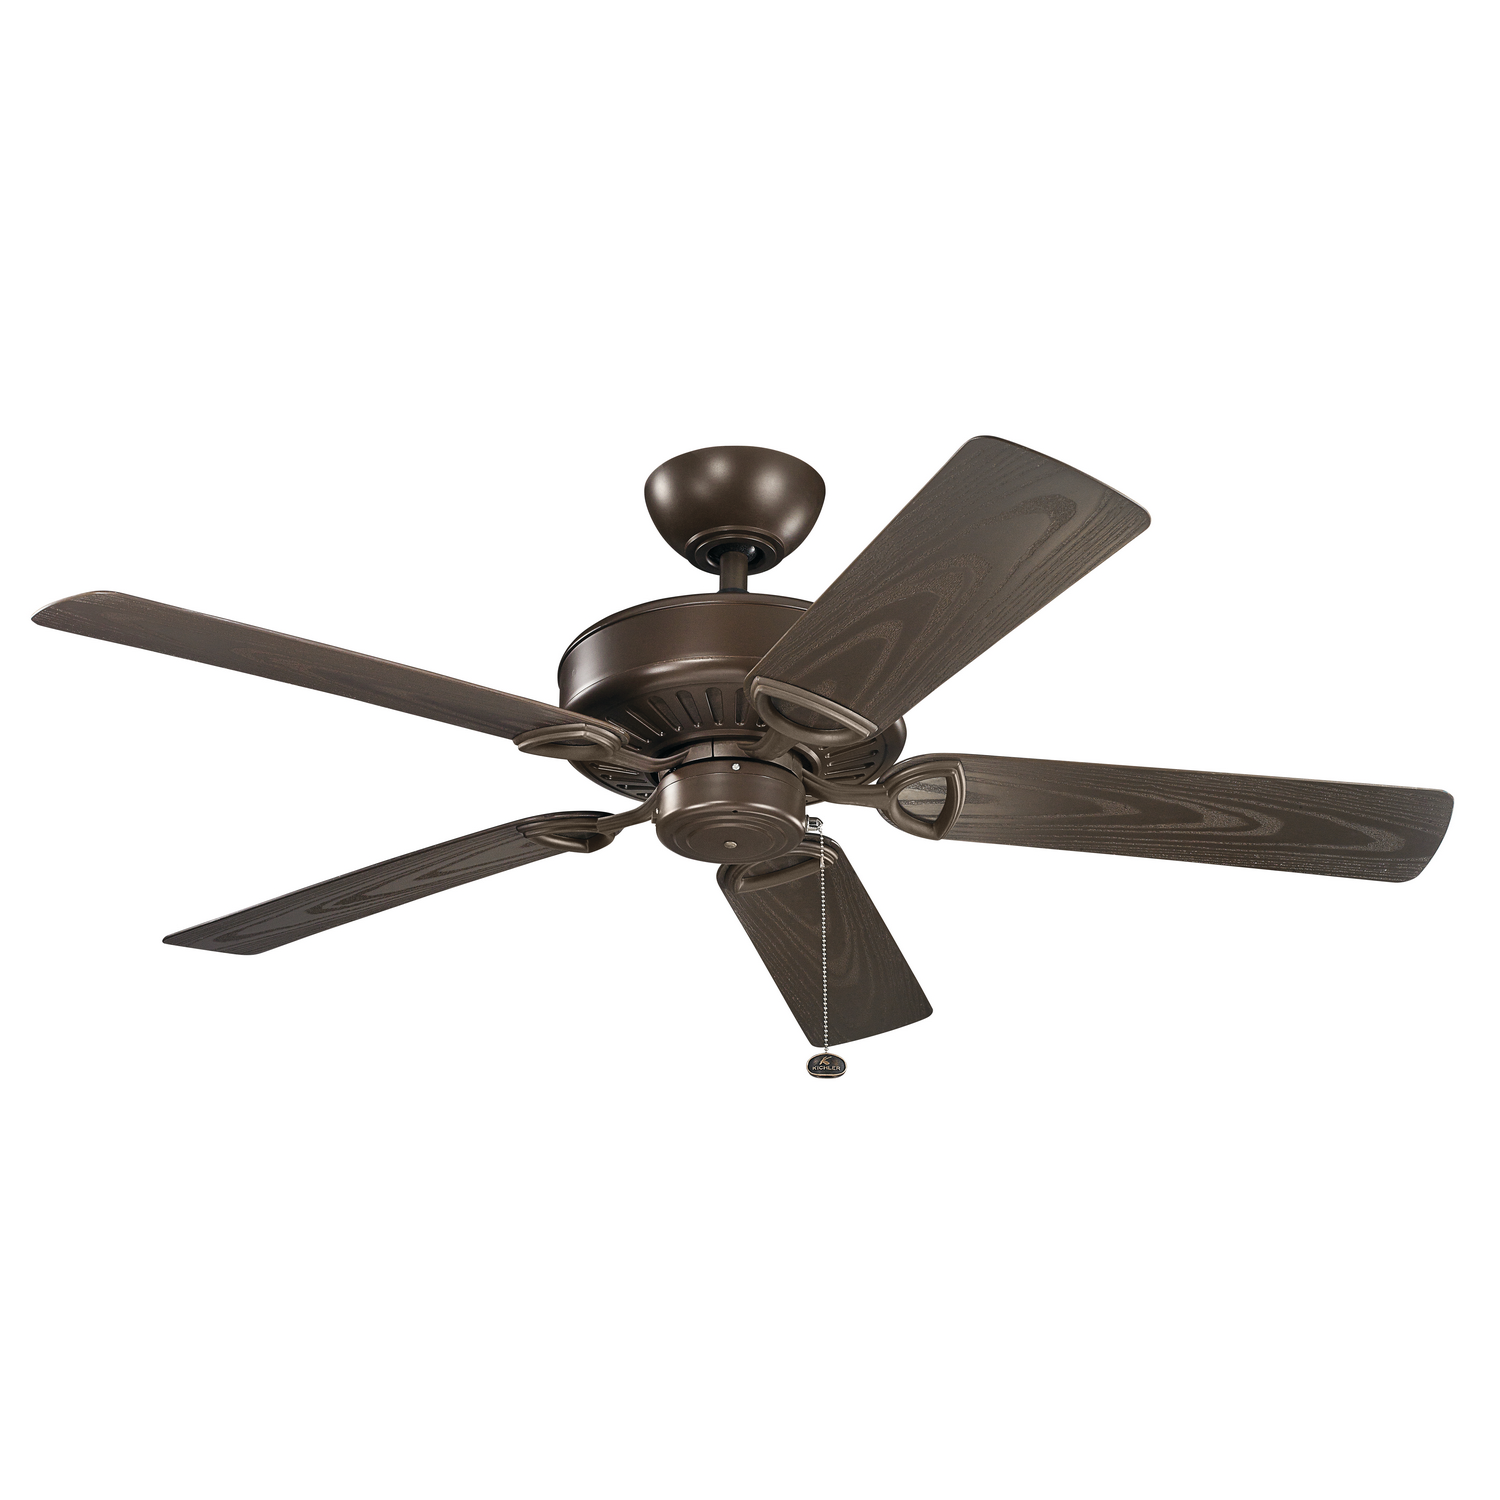 52 inchCeiling Fan from the Enduro collection by Kichler 310145CMO